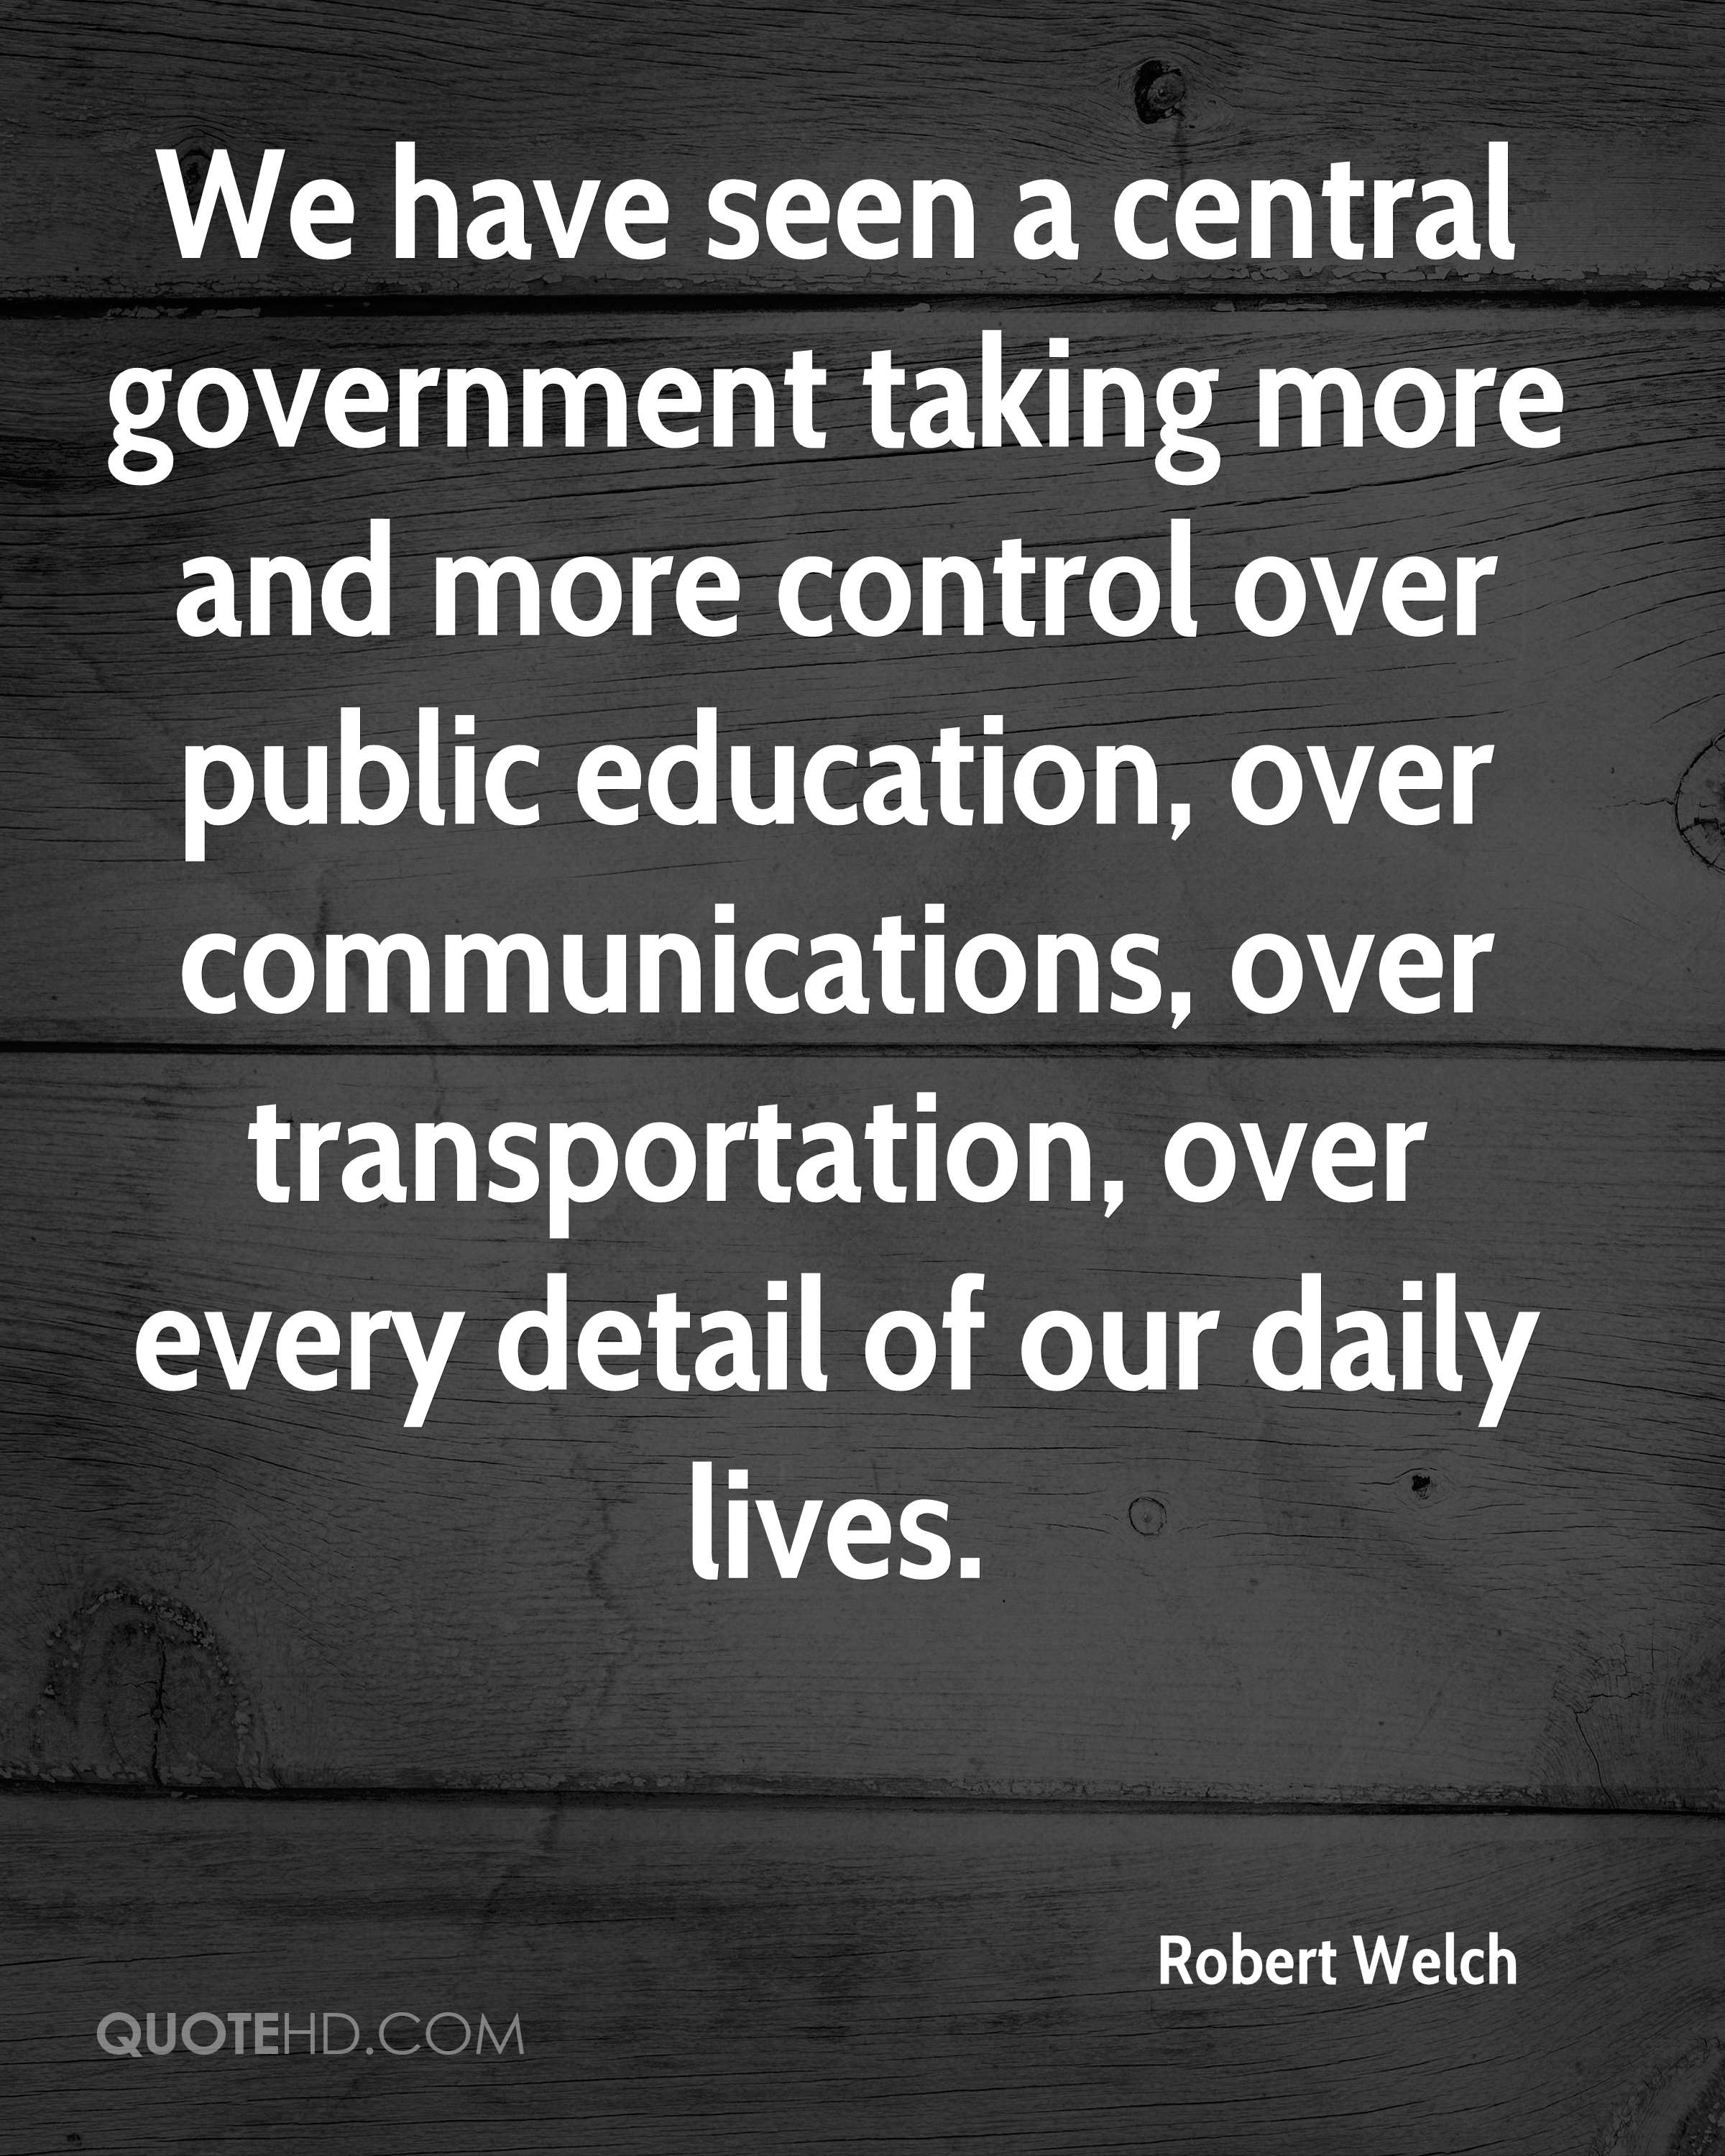 We have seen a central government taking more and more control over public education, over communications, over transportation, over every detail of our daily lives.